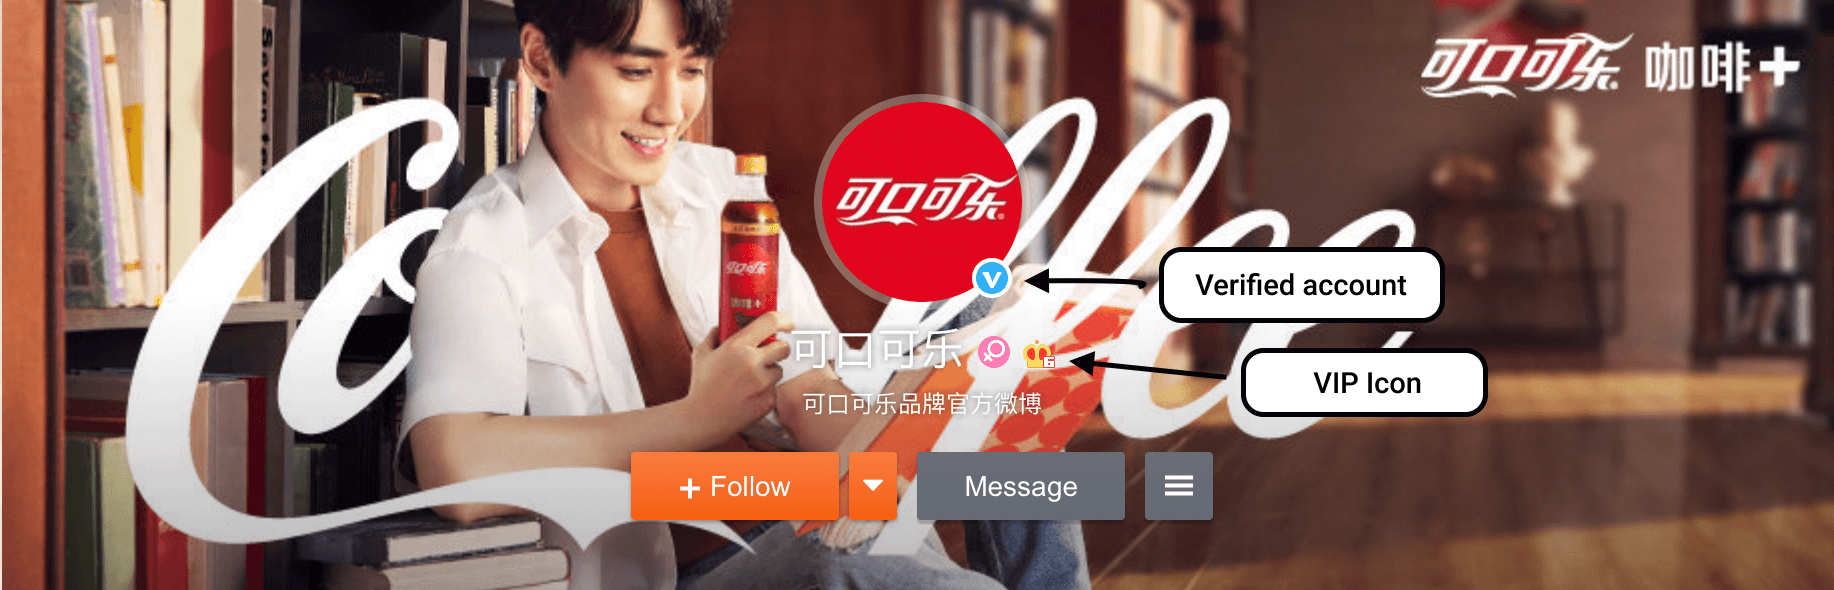 WEIBO Account. Registration and Promotion - 19